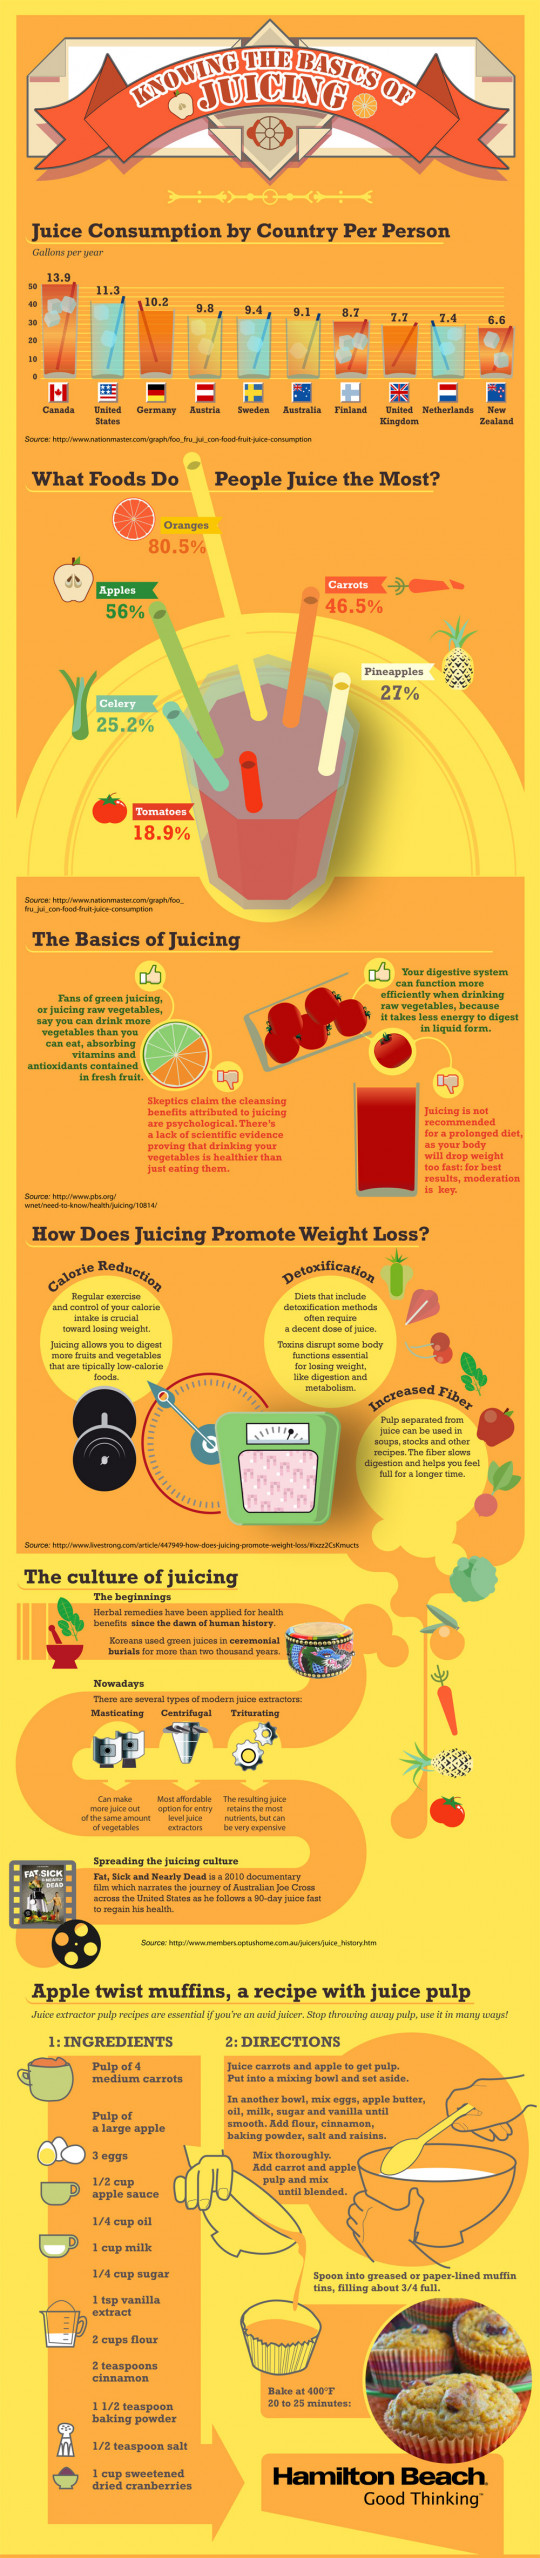 The Basics of Juicing